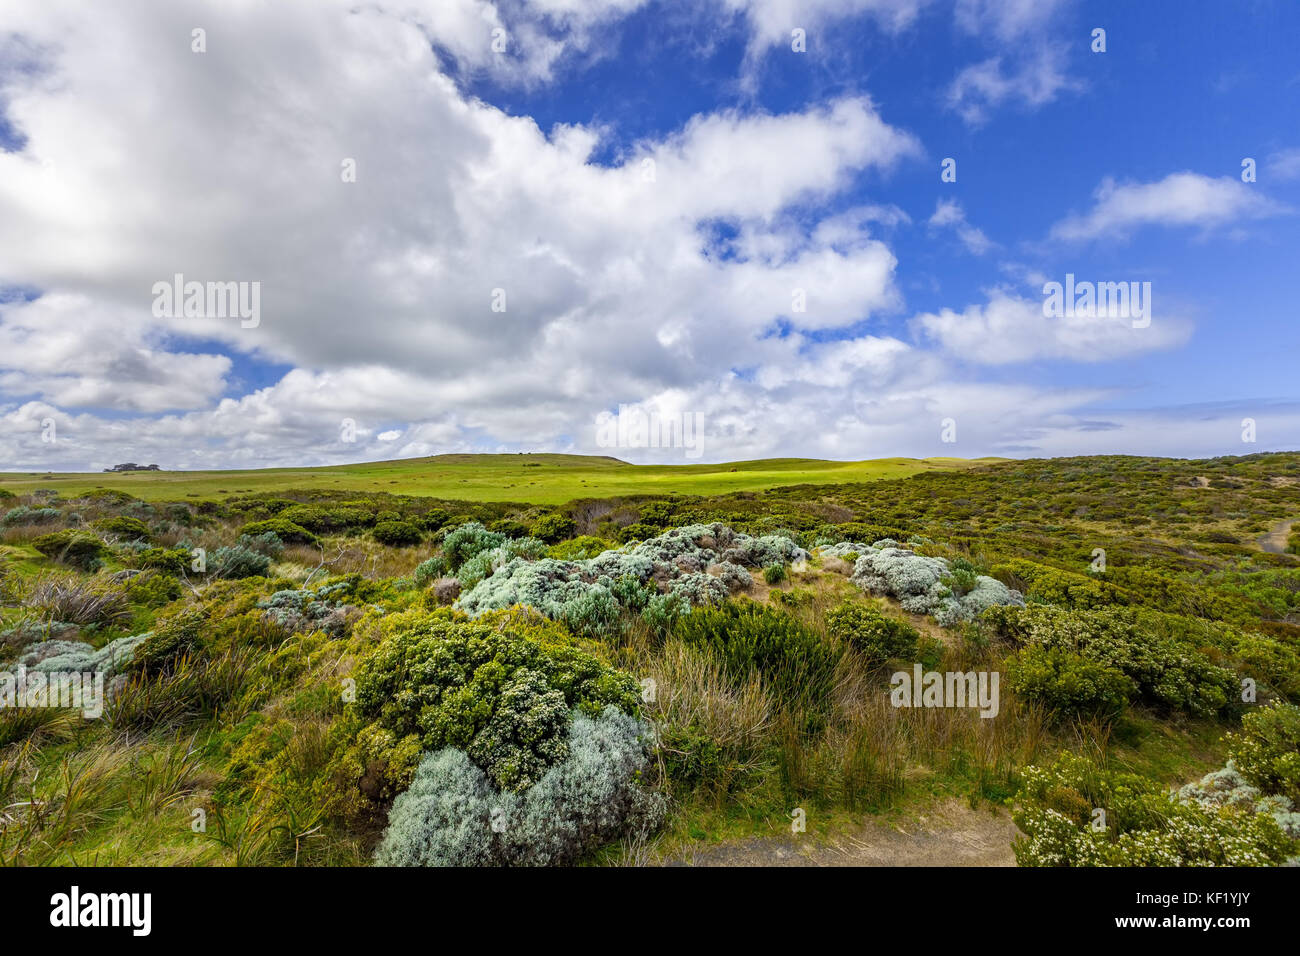 Australian coastal vegetation and white fluffy clouds in blue sky - Stock Image